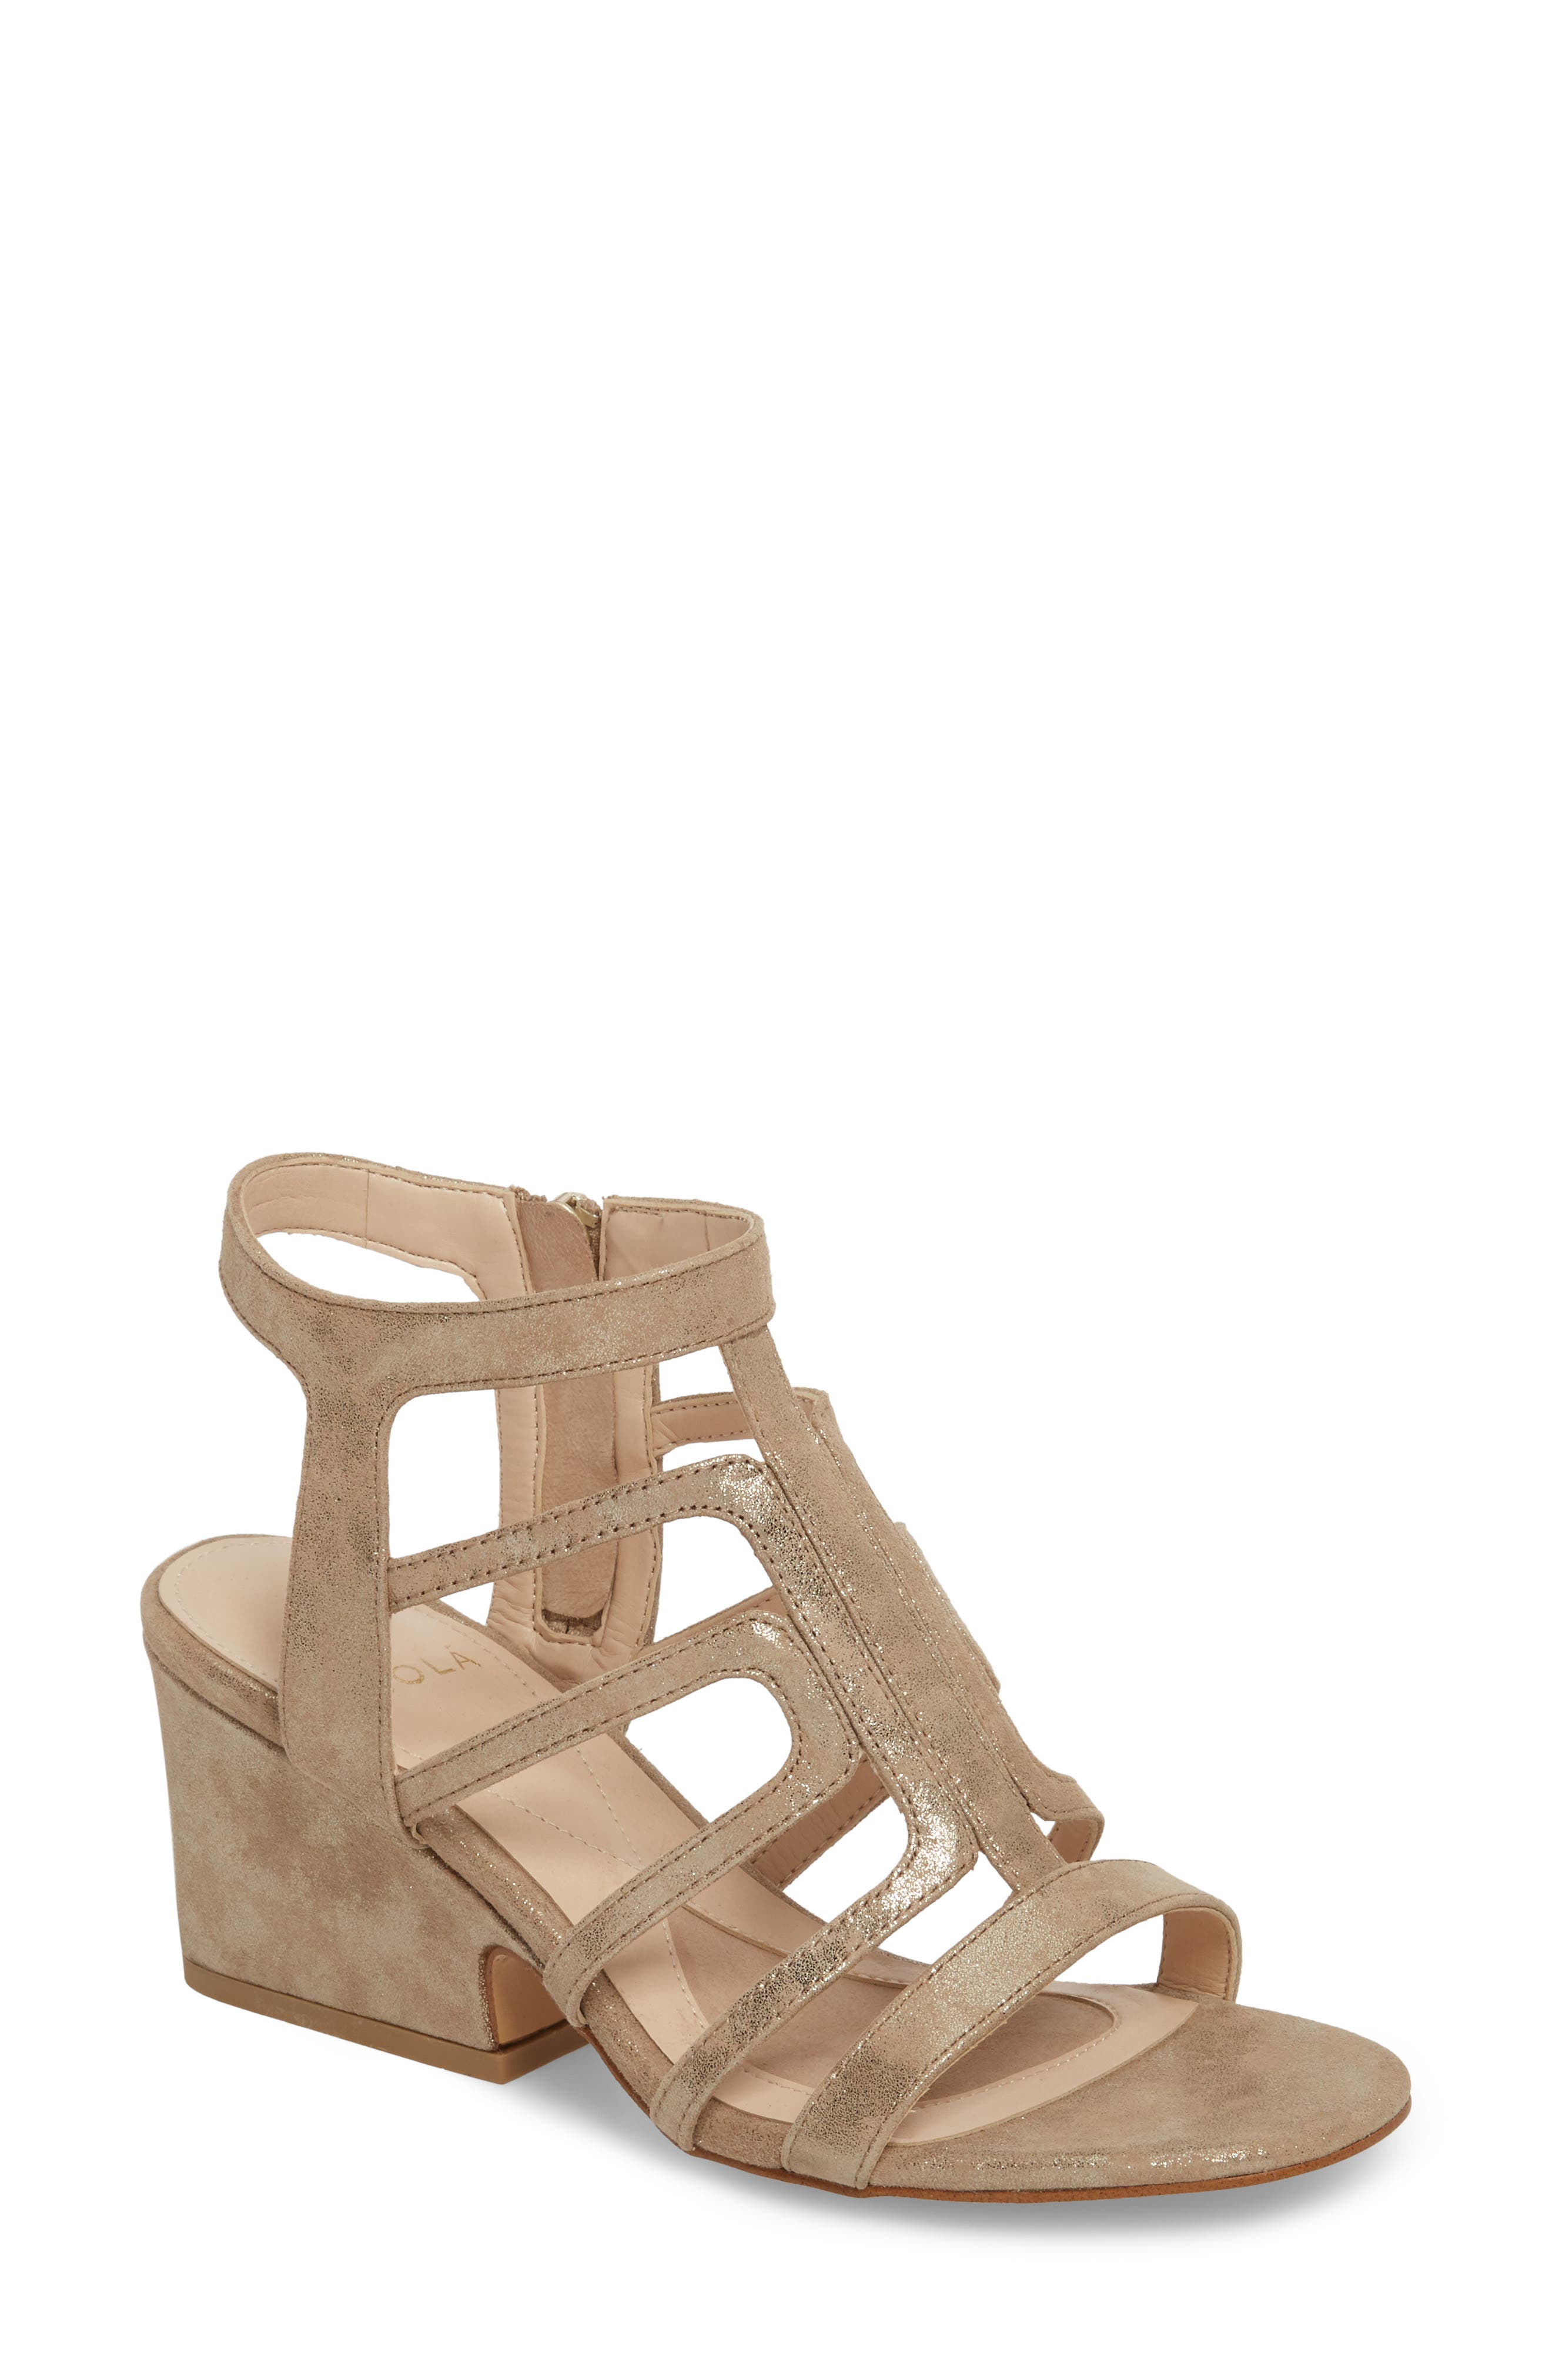 Lina Sandal,                         Main,                         color, ANTHRACITE SUEDE